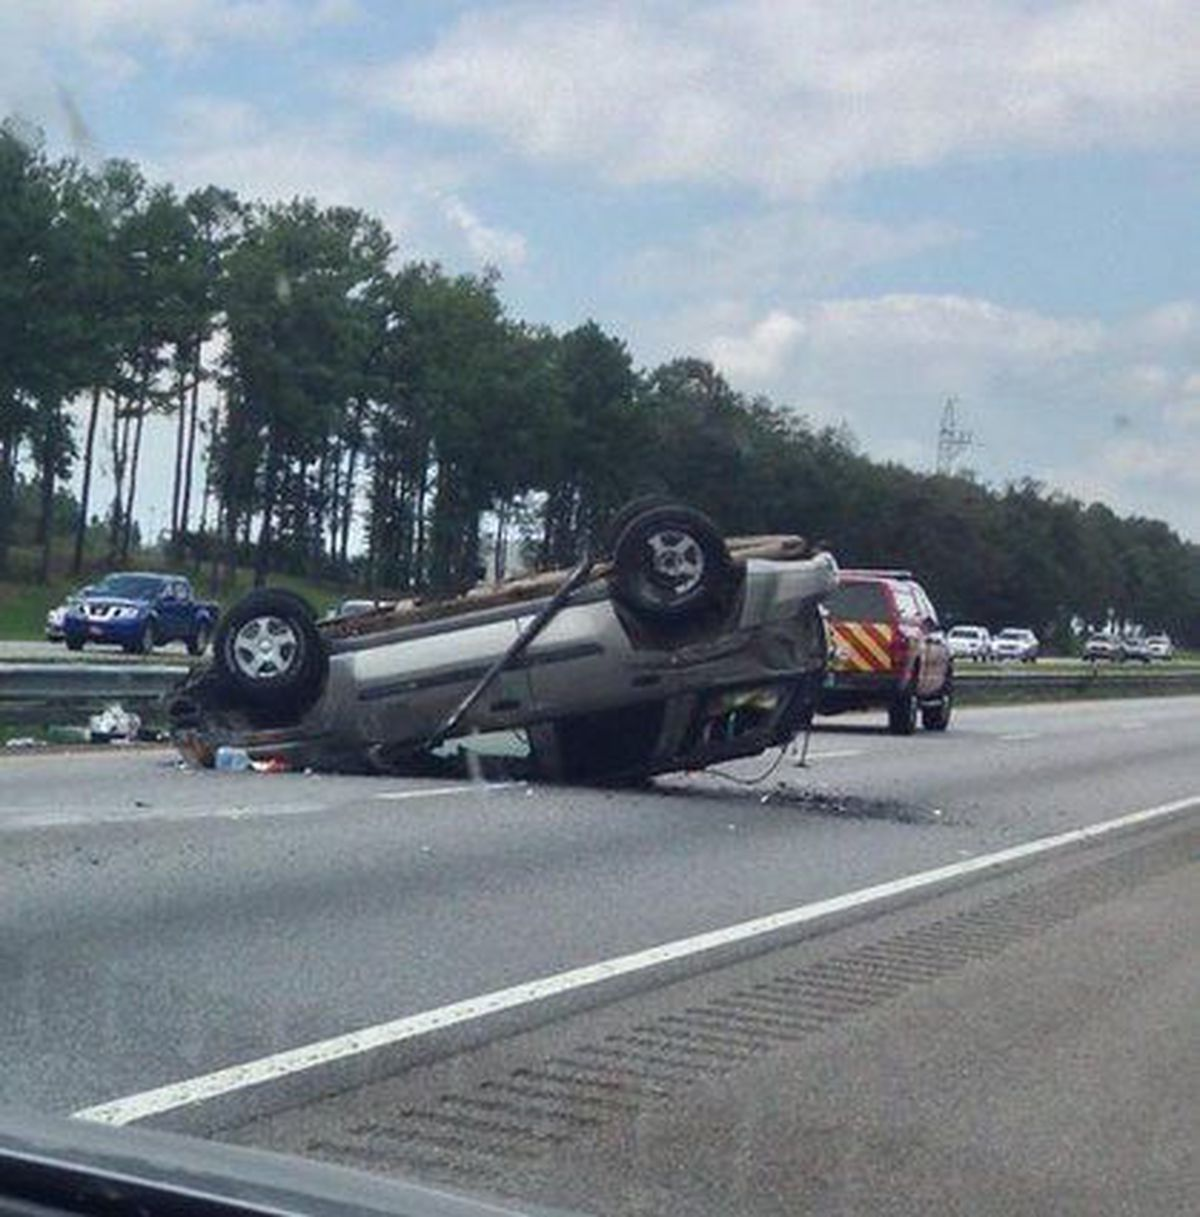 Traffic flowing again after wreck on I-65 northbound near